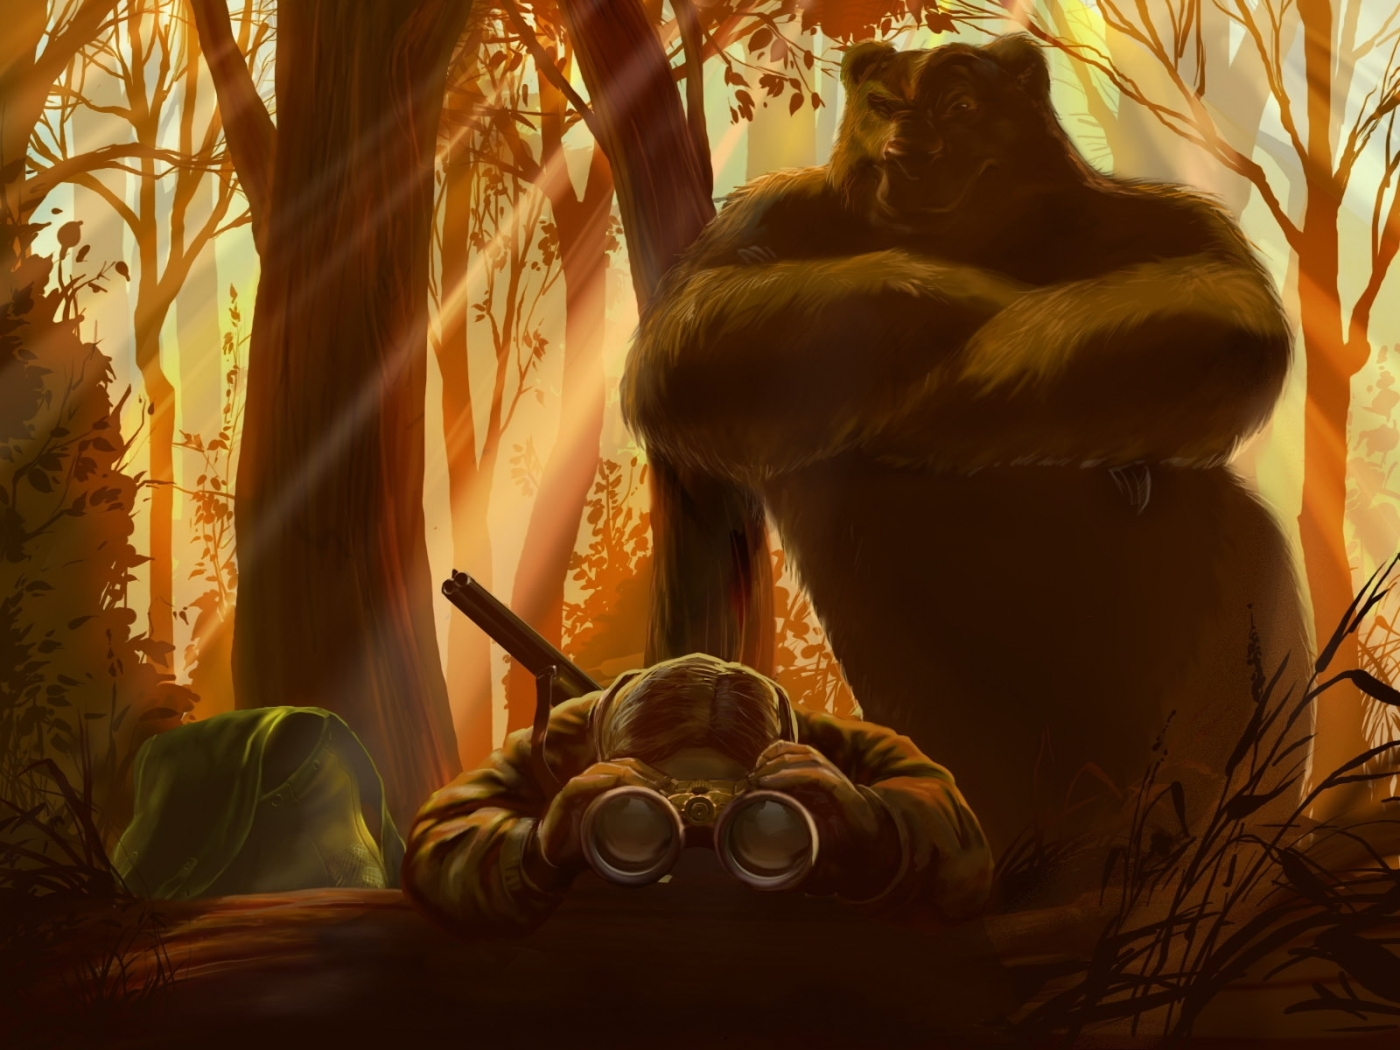 25251 download wallpaper Funny, Animals, People, Men, Bears, Pictures screensavers and pictures for free